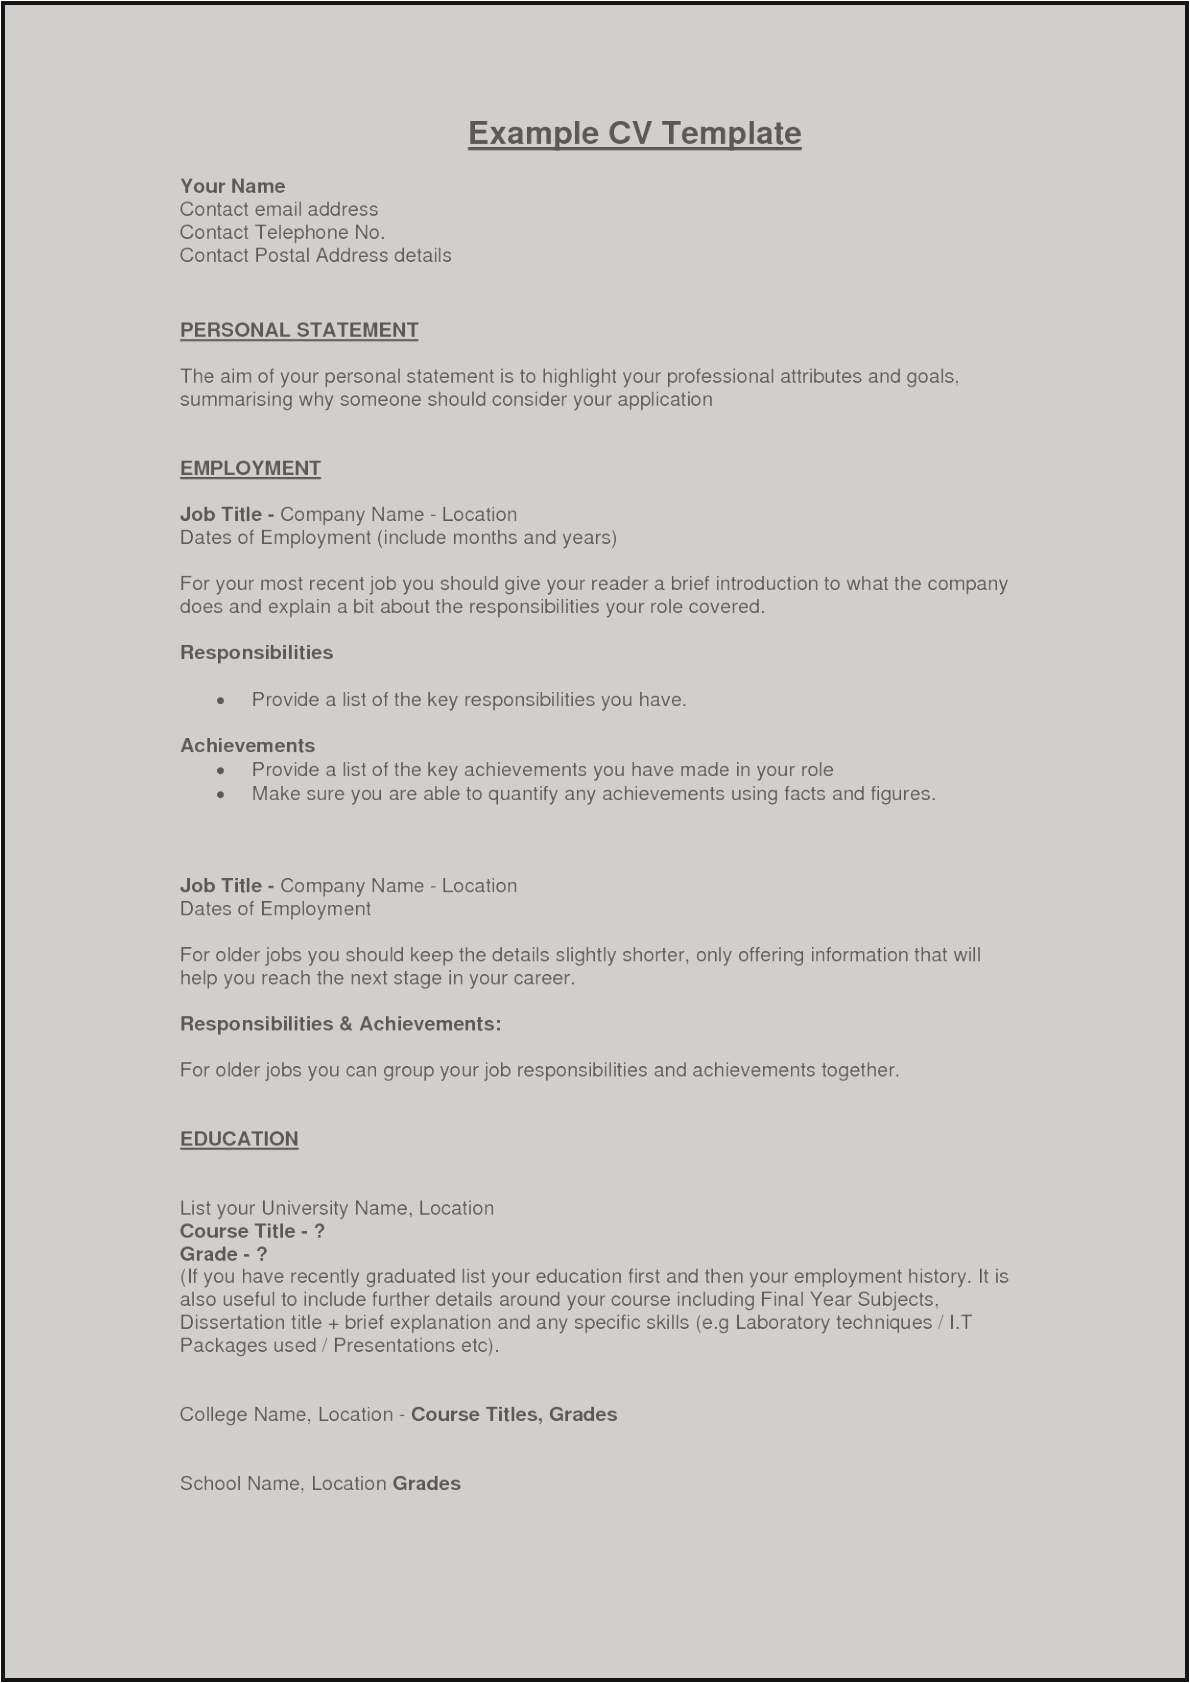 Good Headline for Resume - Resume Summary Example 2018 Example Perfect Resume Fresh Examples